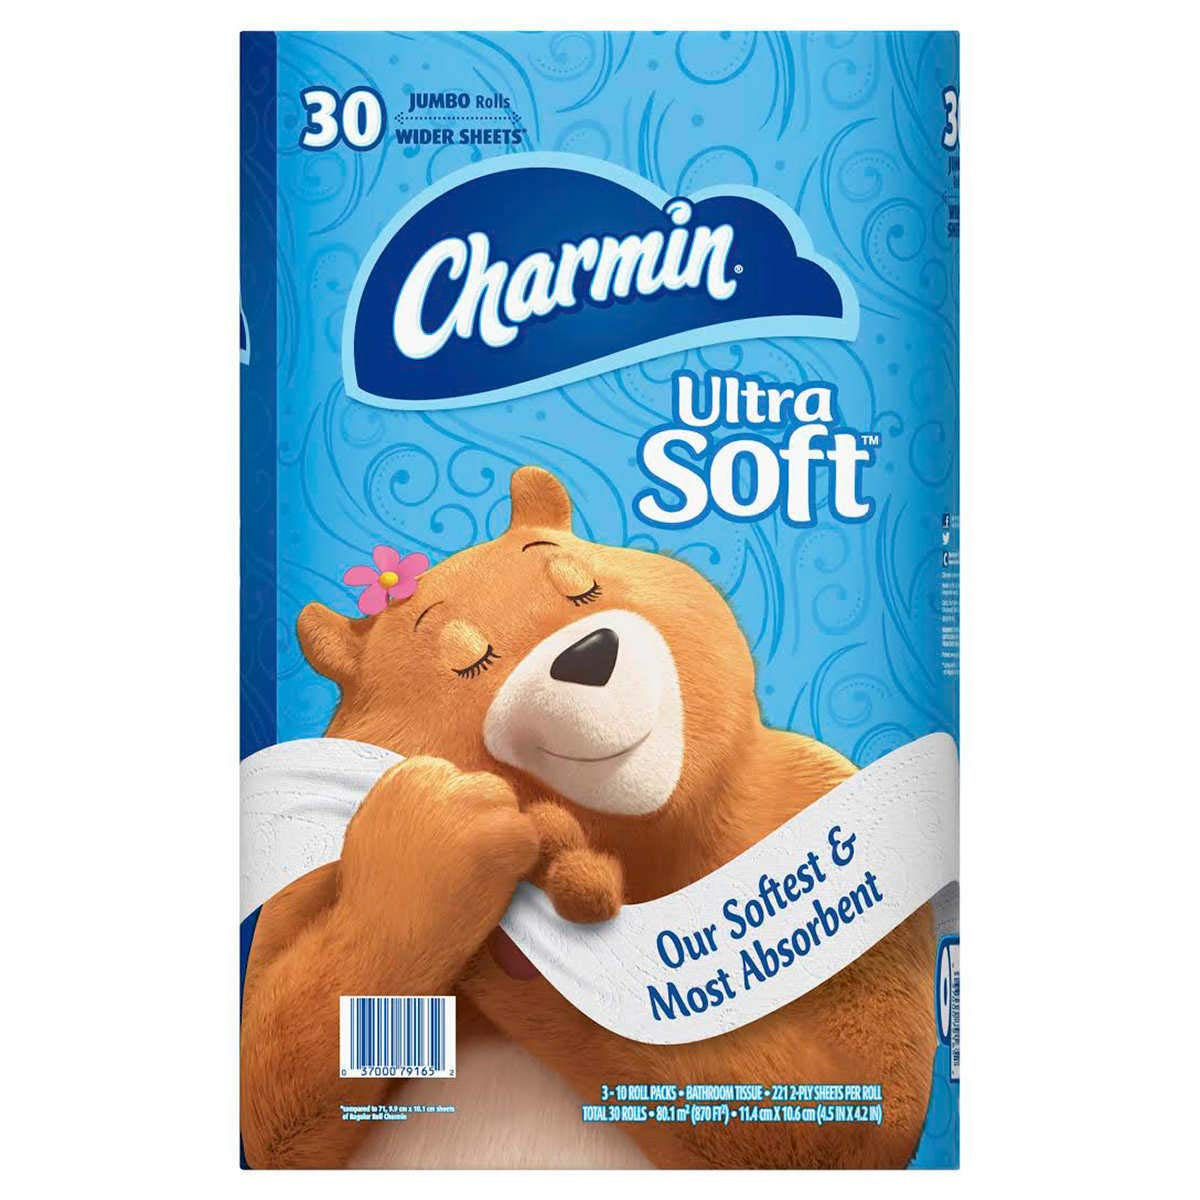 Charmin Ultra Soft Toilet Paper 30 Jumbo Rolls, Bath Tissue, White by Charmin